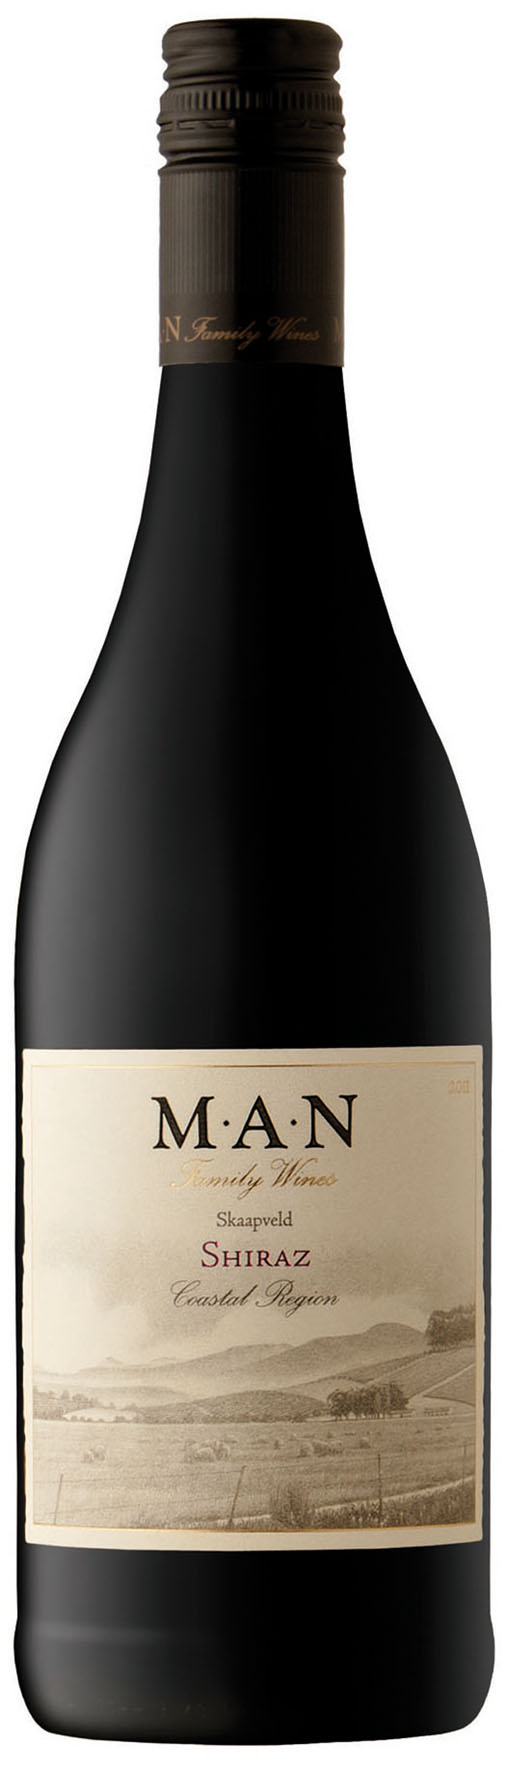 2015 - Skaapveld -Shiraz  MAN Family Wines Coastal